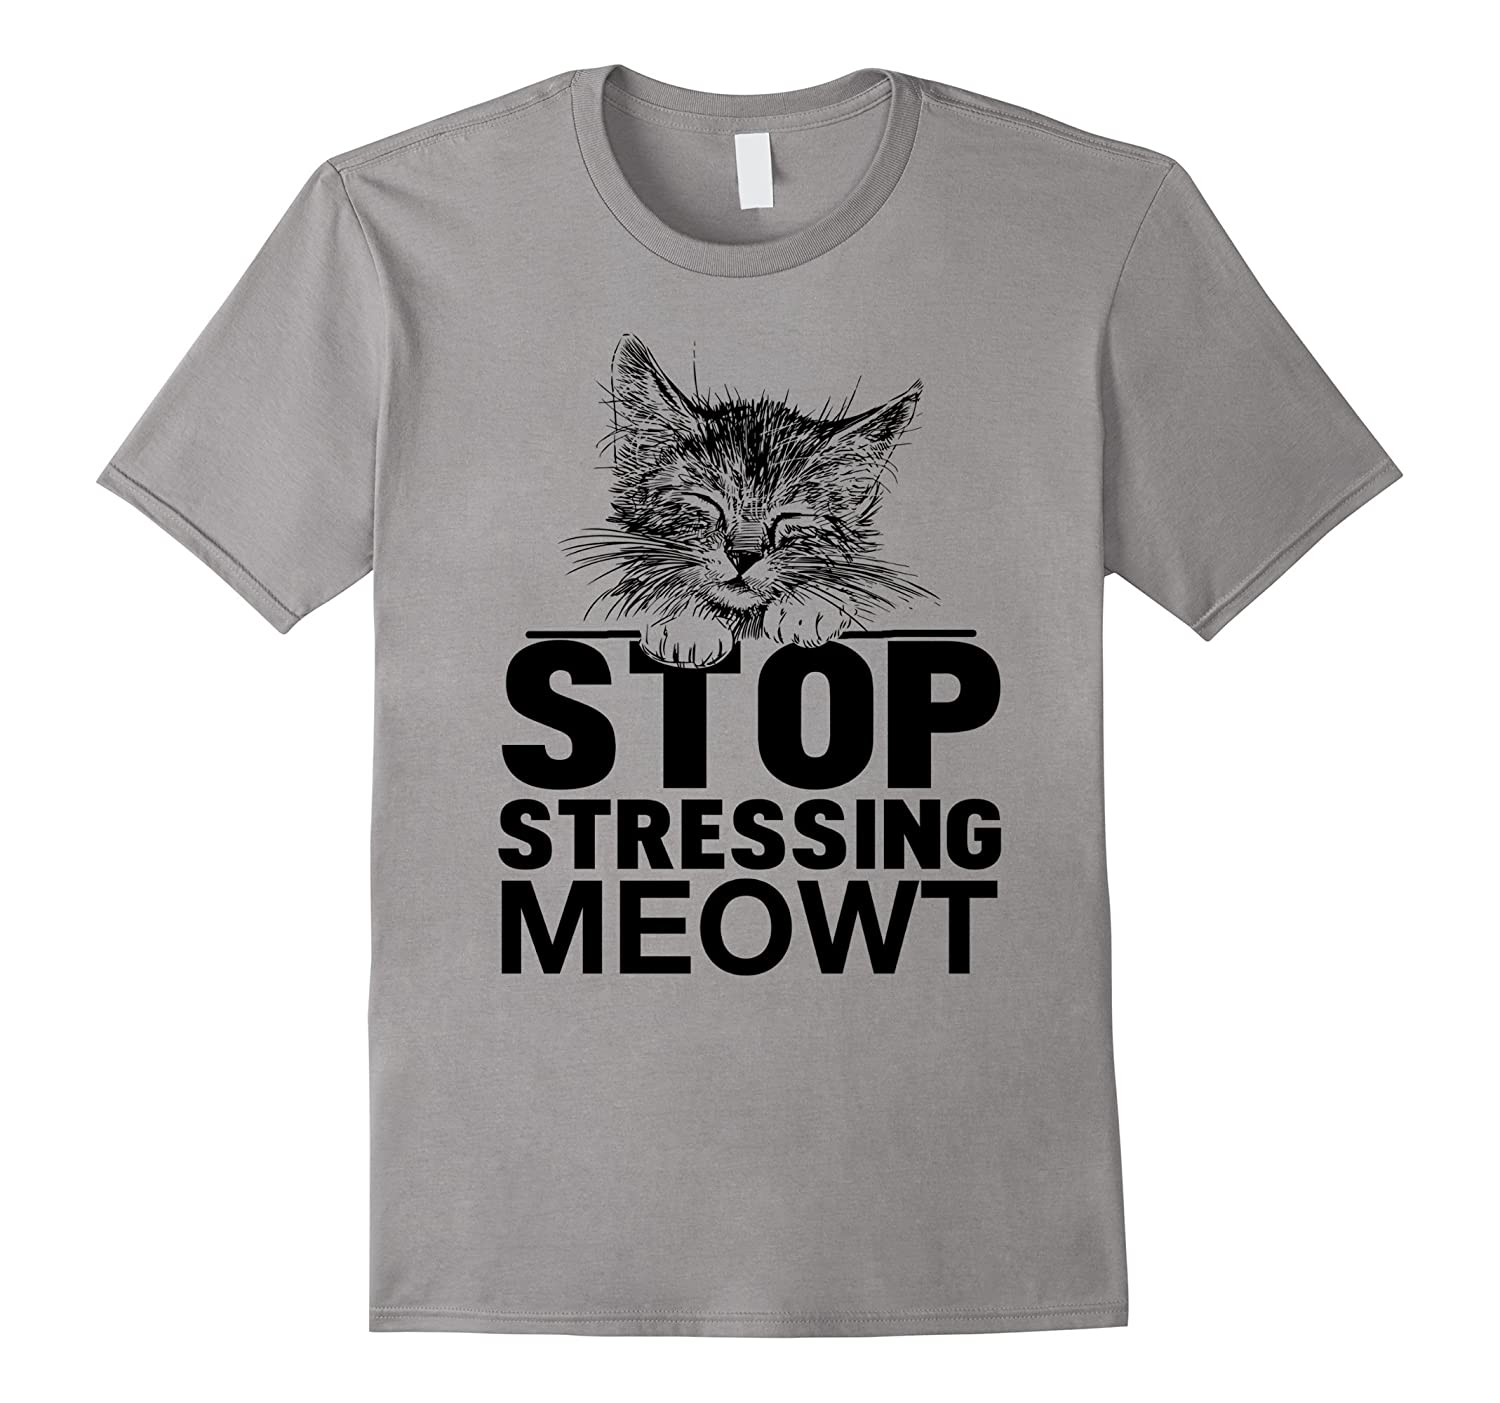 Stop Stressing Meowt T Shirt - I Love Cat Shirts Gift Idea-RT